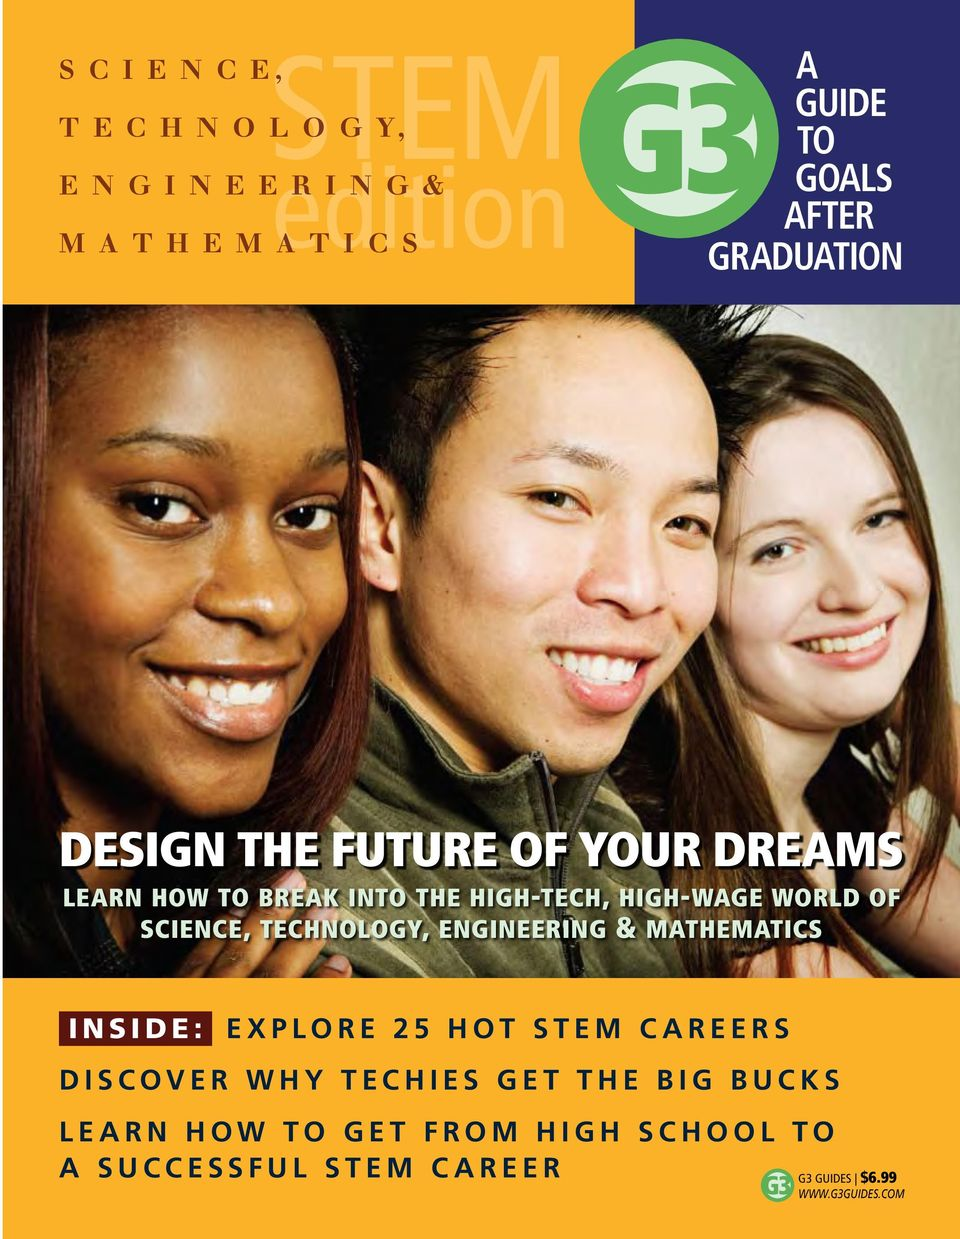 of science, technology, engineering & mathematics INSIDE: Explore 25 hot STEM careers Discover why techies get